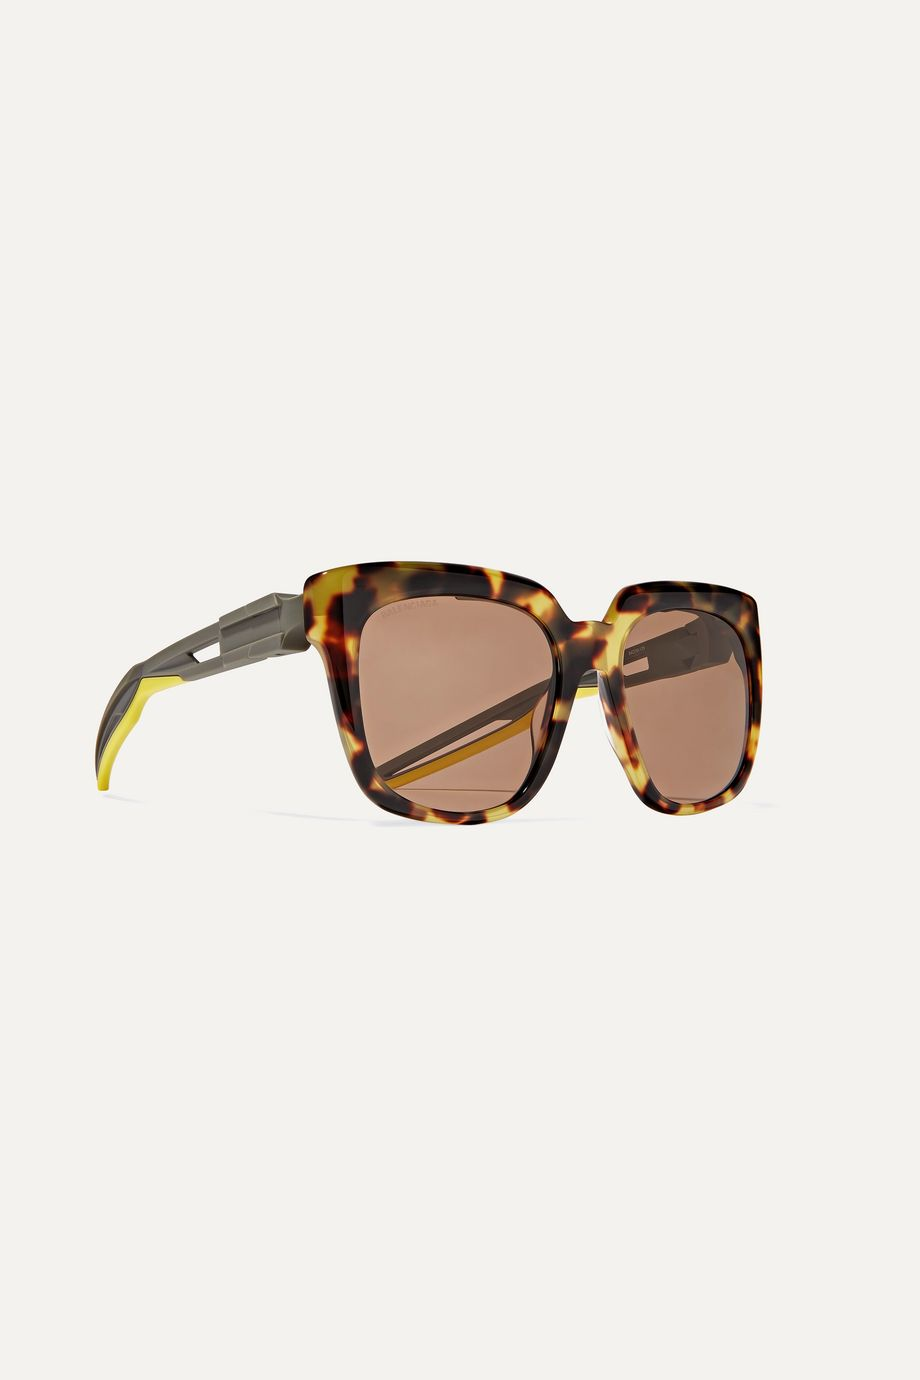 Balenciaga Hybrid oversized cat-eye acetate sunglasses